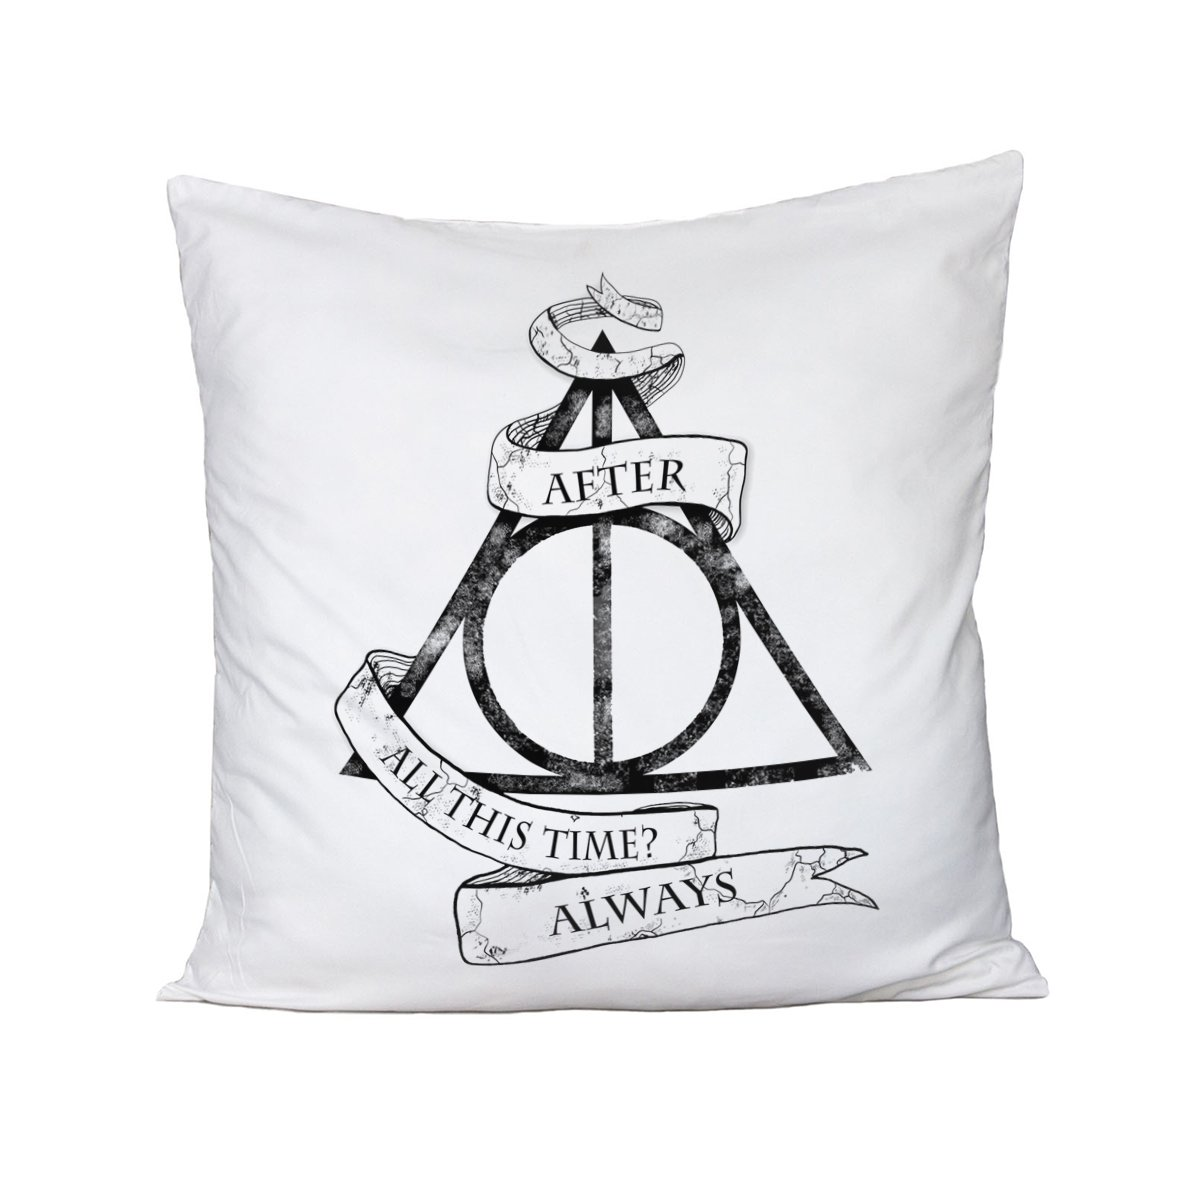 Cuscino Harry Potter - After all this time? Always - in cotone bubbleshirt